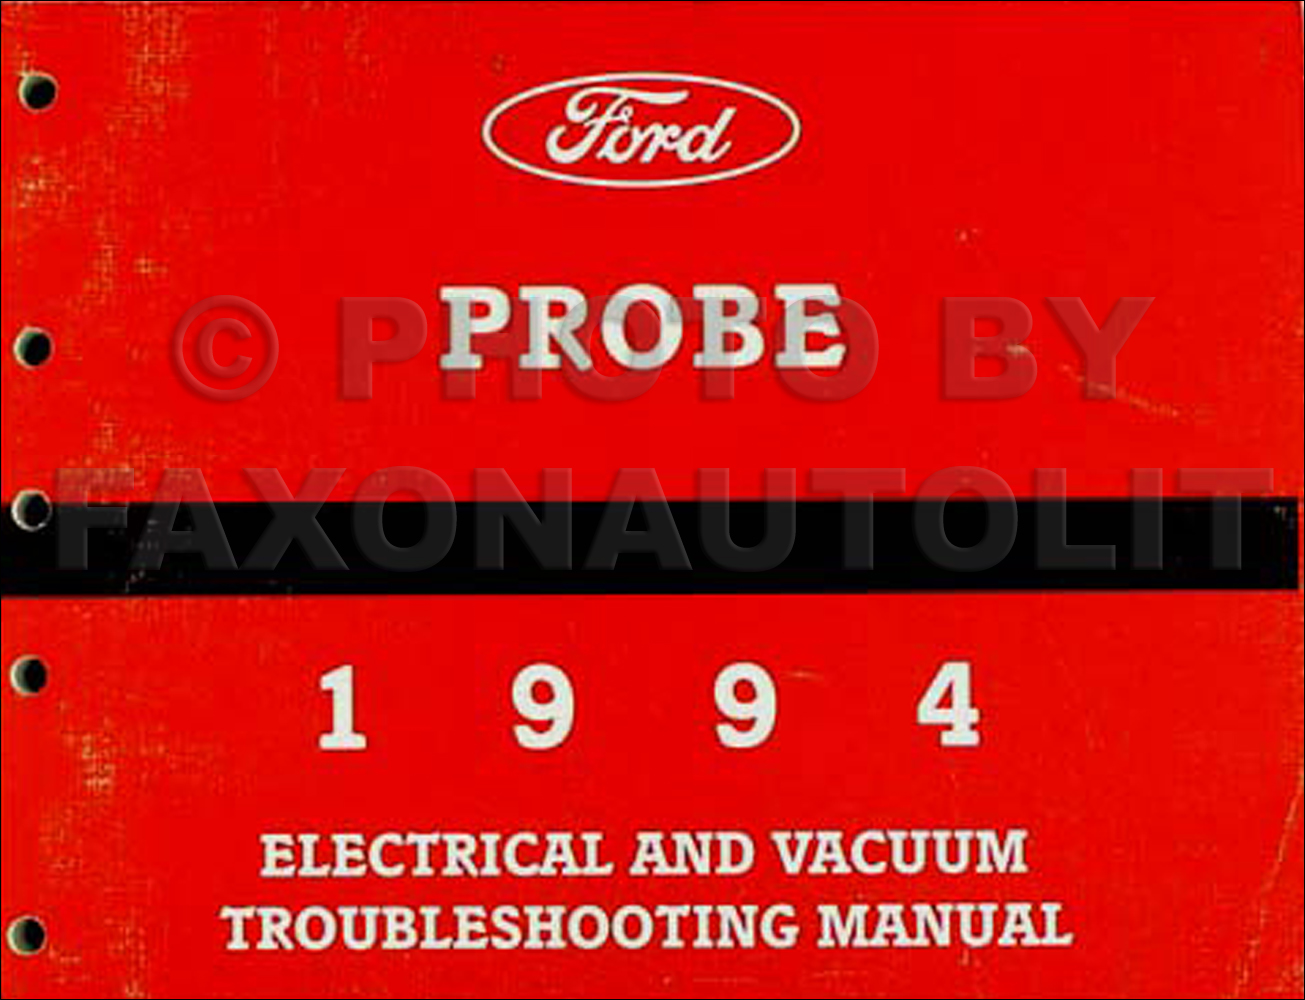 1994 Ford Probe Electrical & Vacuum Troubleshooting Manual Original